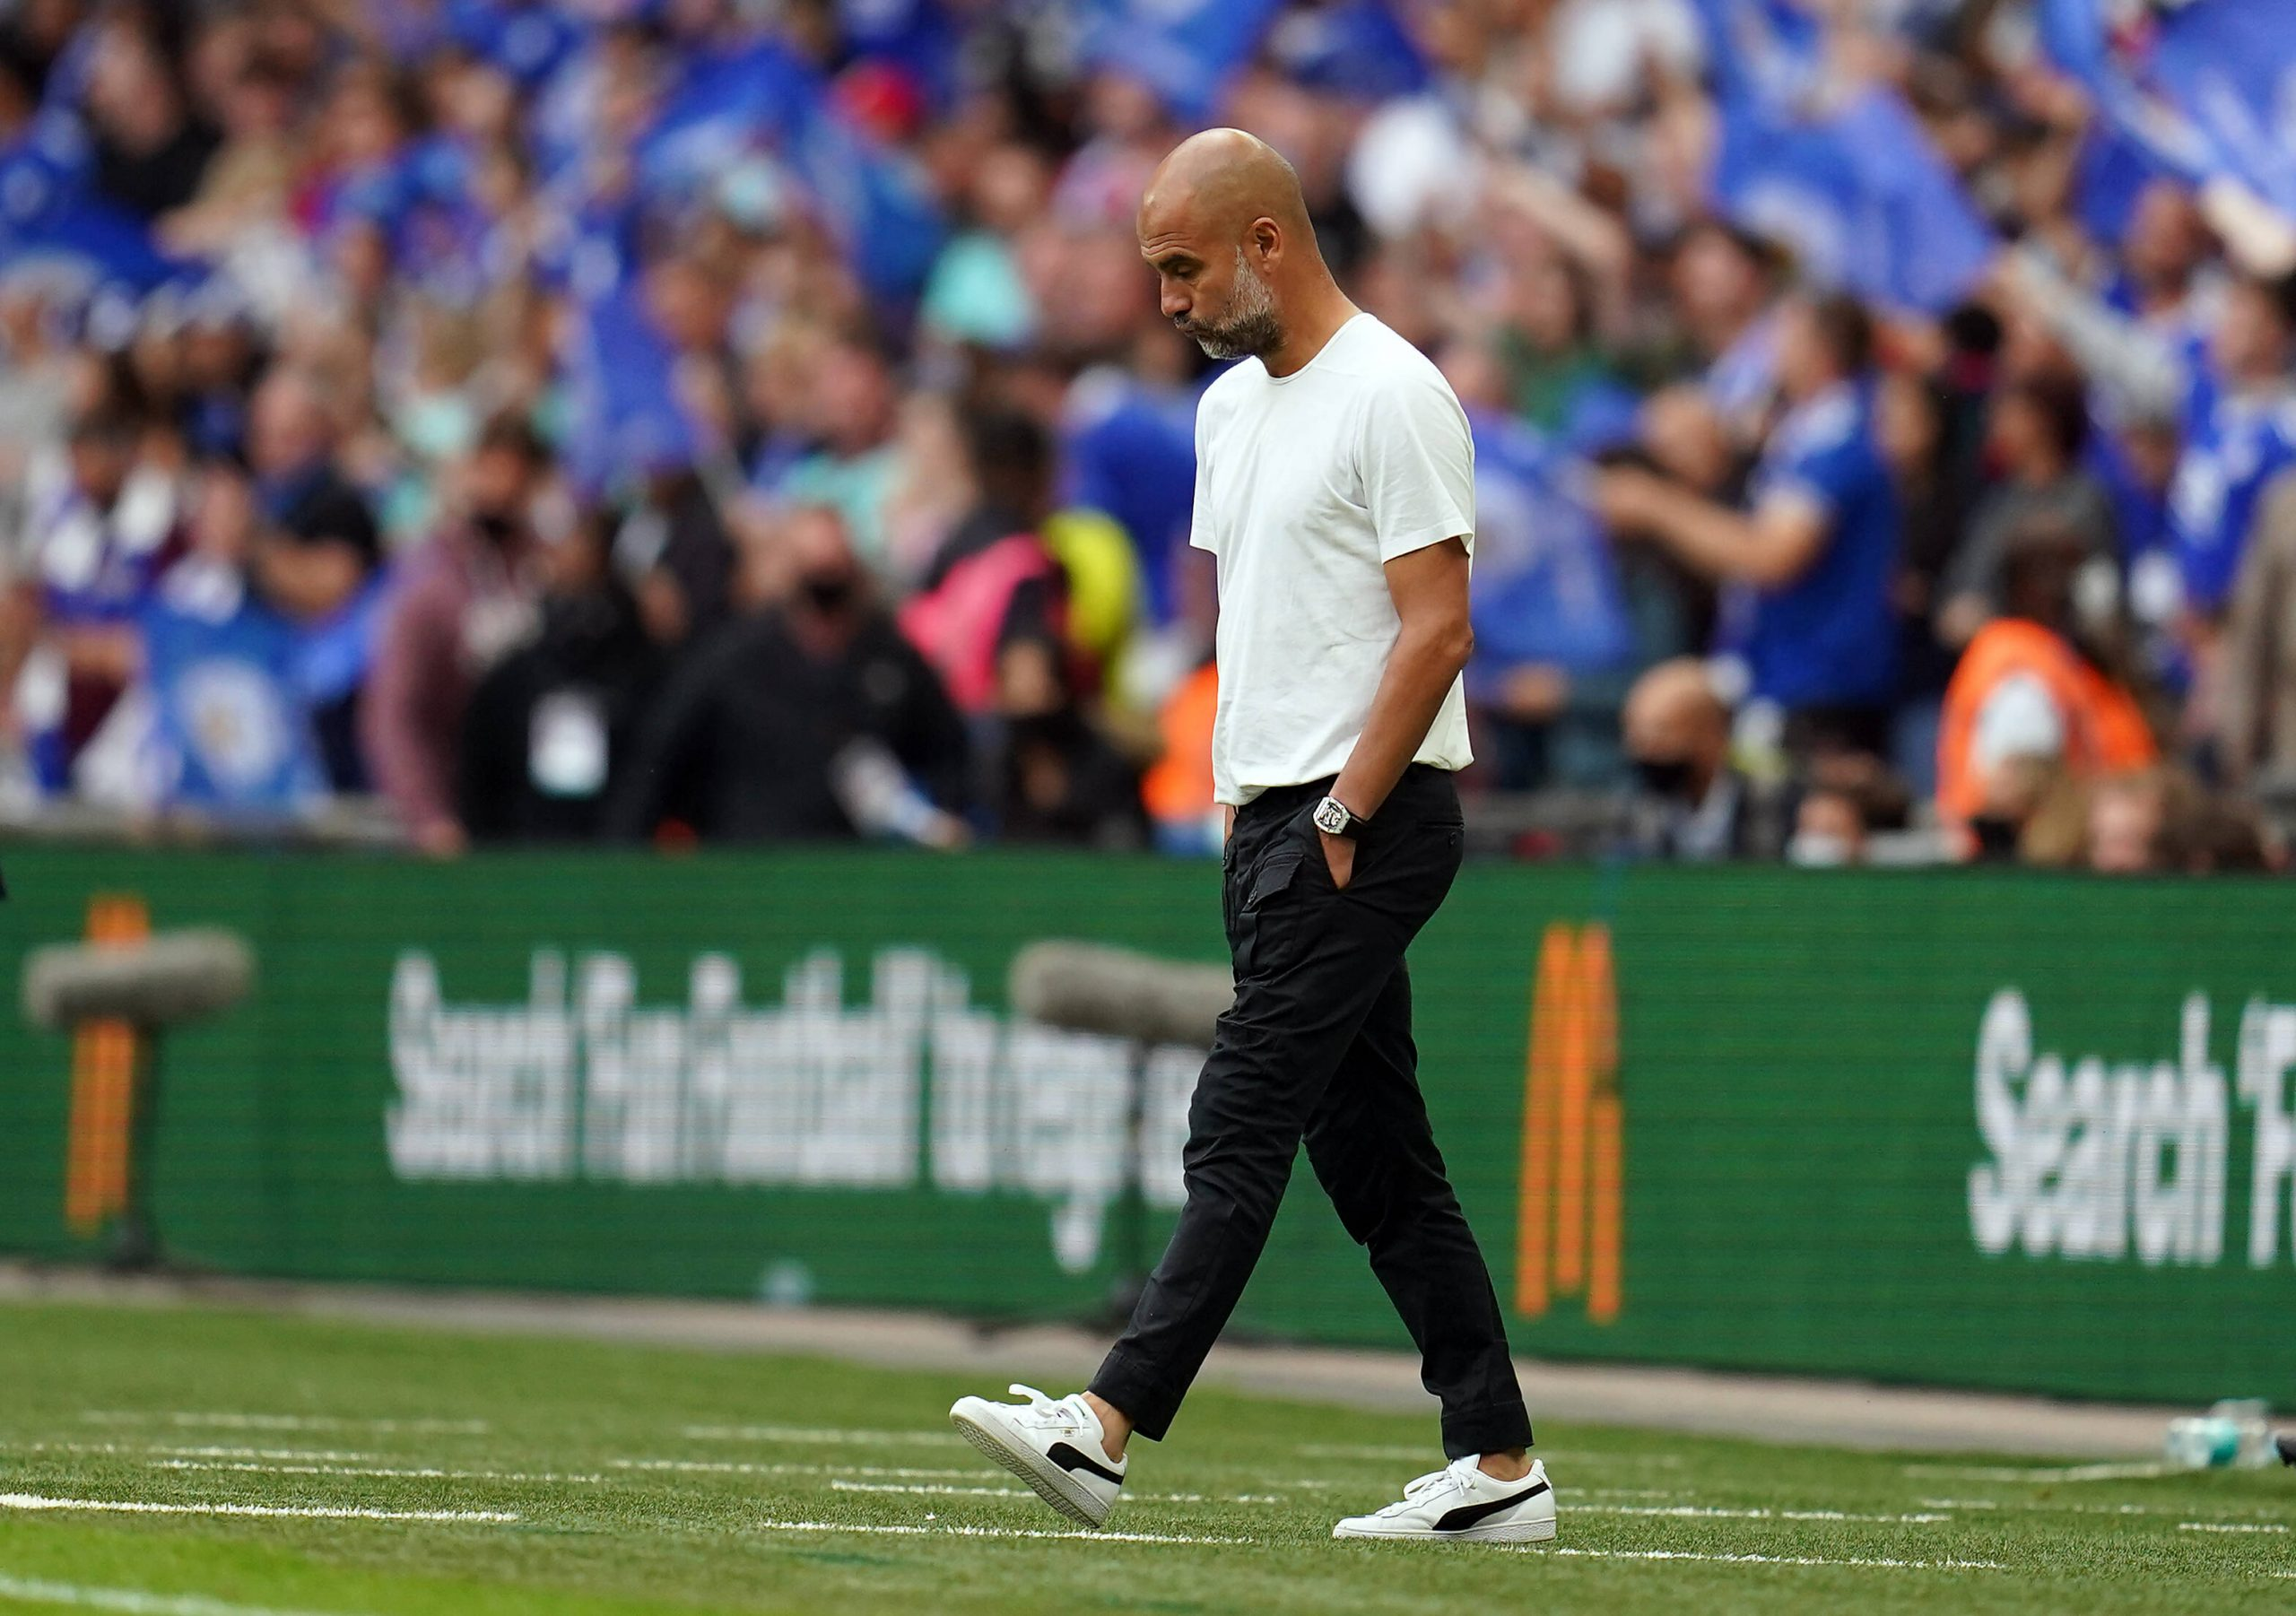 PSG vs Man City: Pep Guardiola Admits He Doesn't Know How To Stop Messi, Neymar, Mbappe